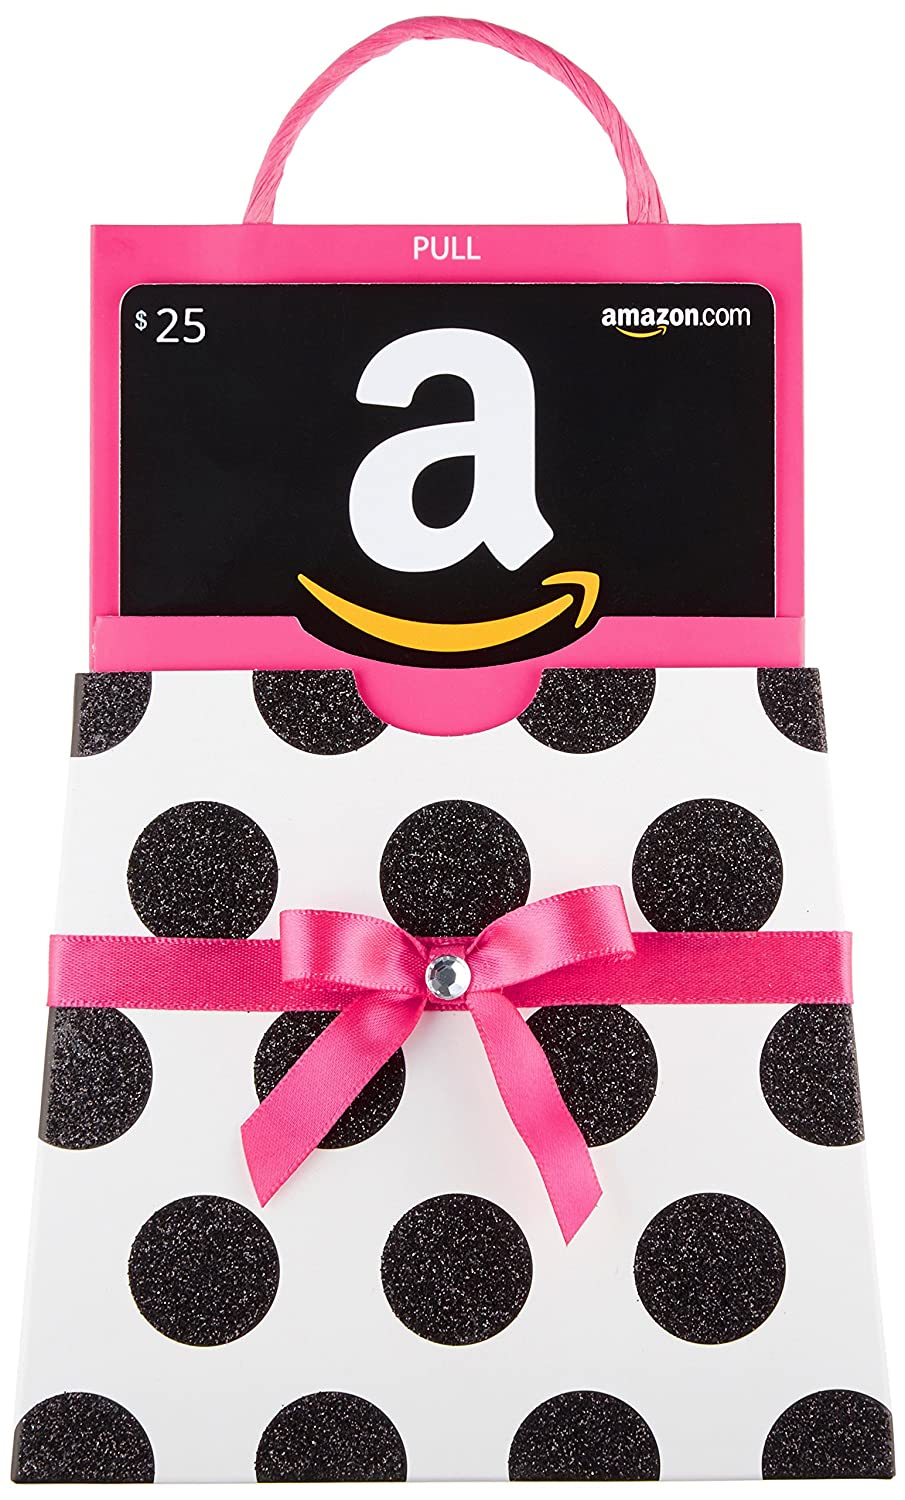 Amazon.com Gift Card in a Polka Dot Reveal (Classic Black Card Design) VariableDenomination